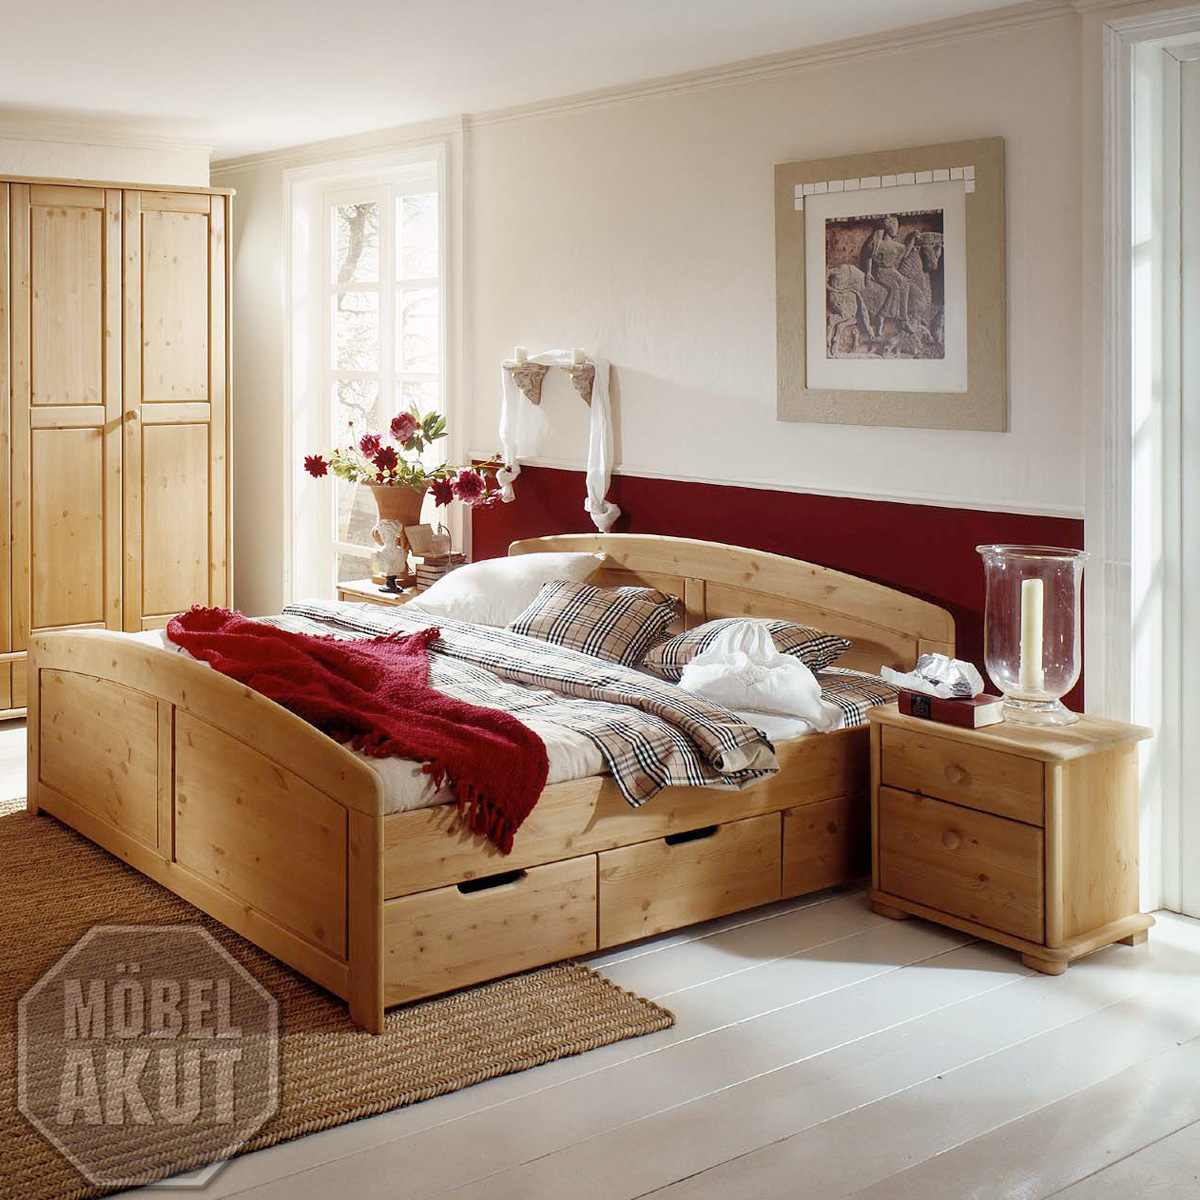 bett alborg doppelbett in kiefer massiv wei 200x200. Black Bedroom Furniture Sets. Home Design Ideas